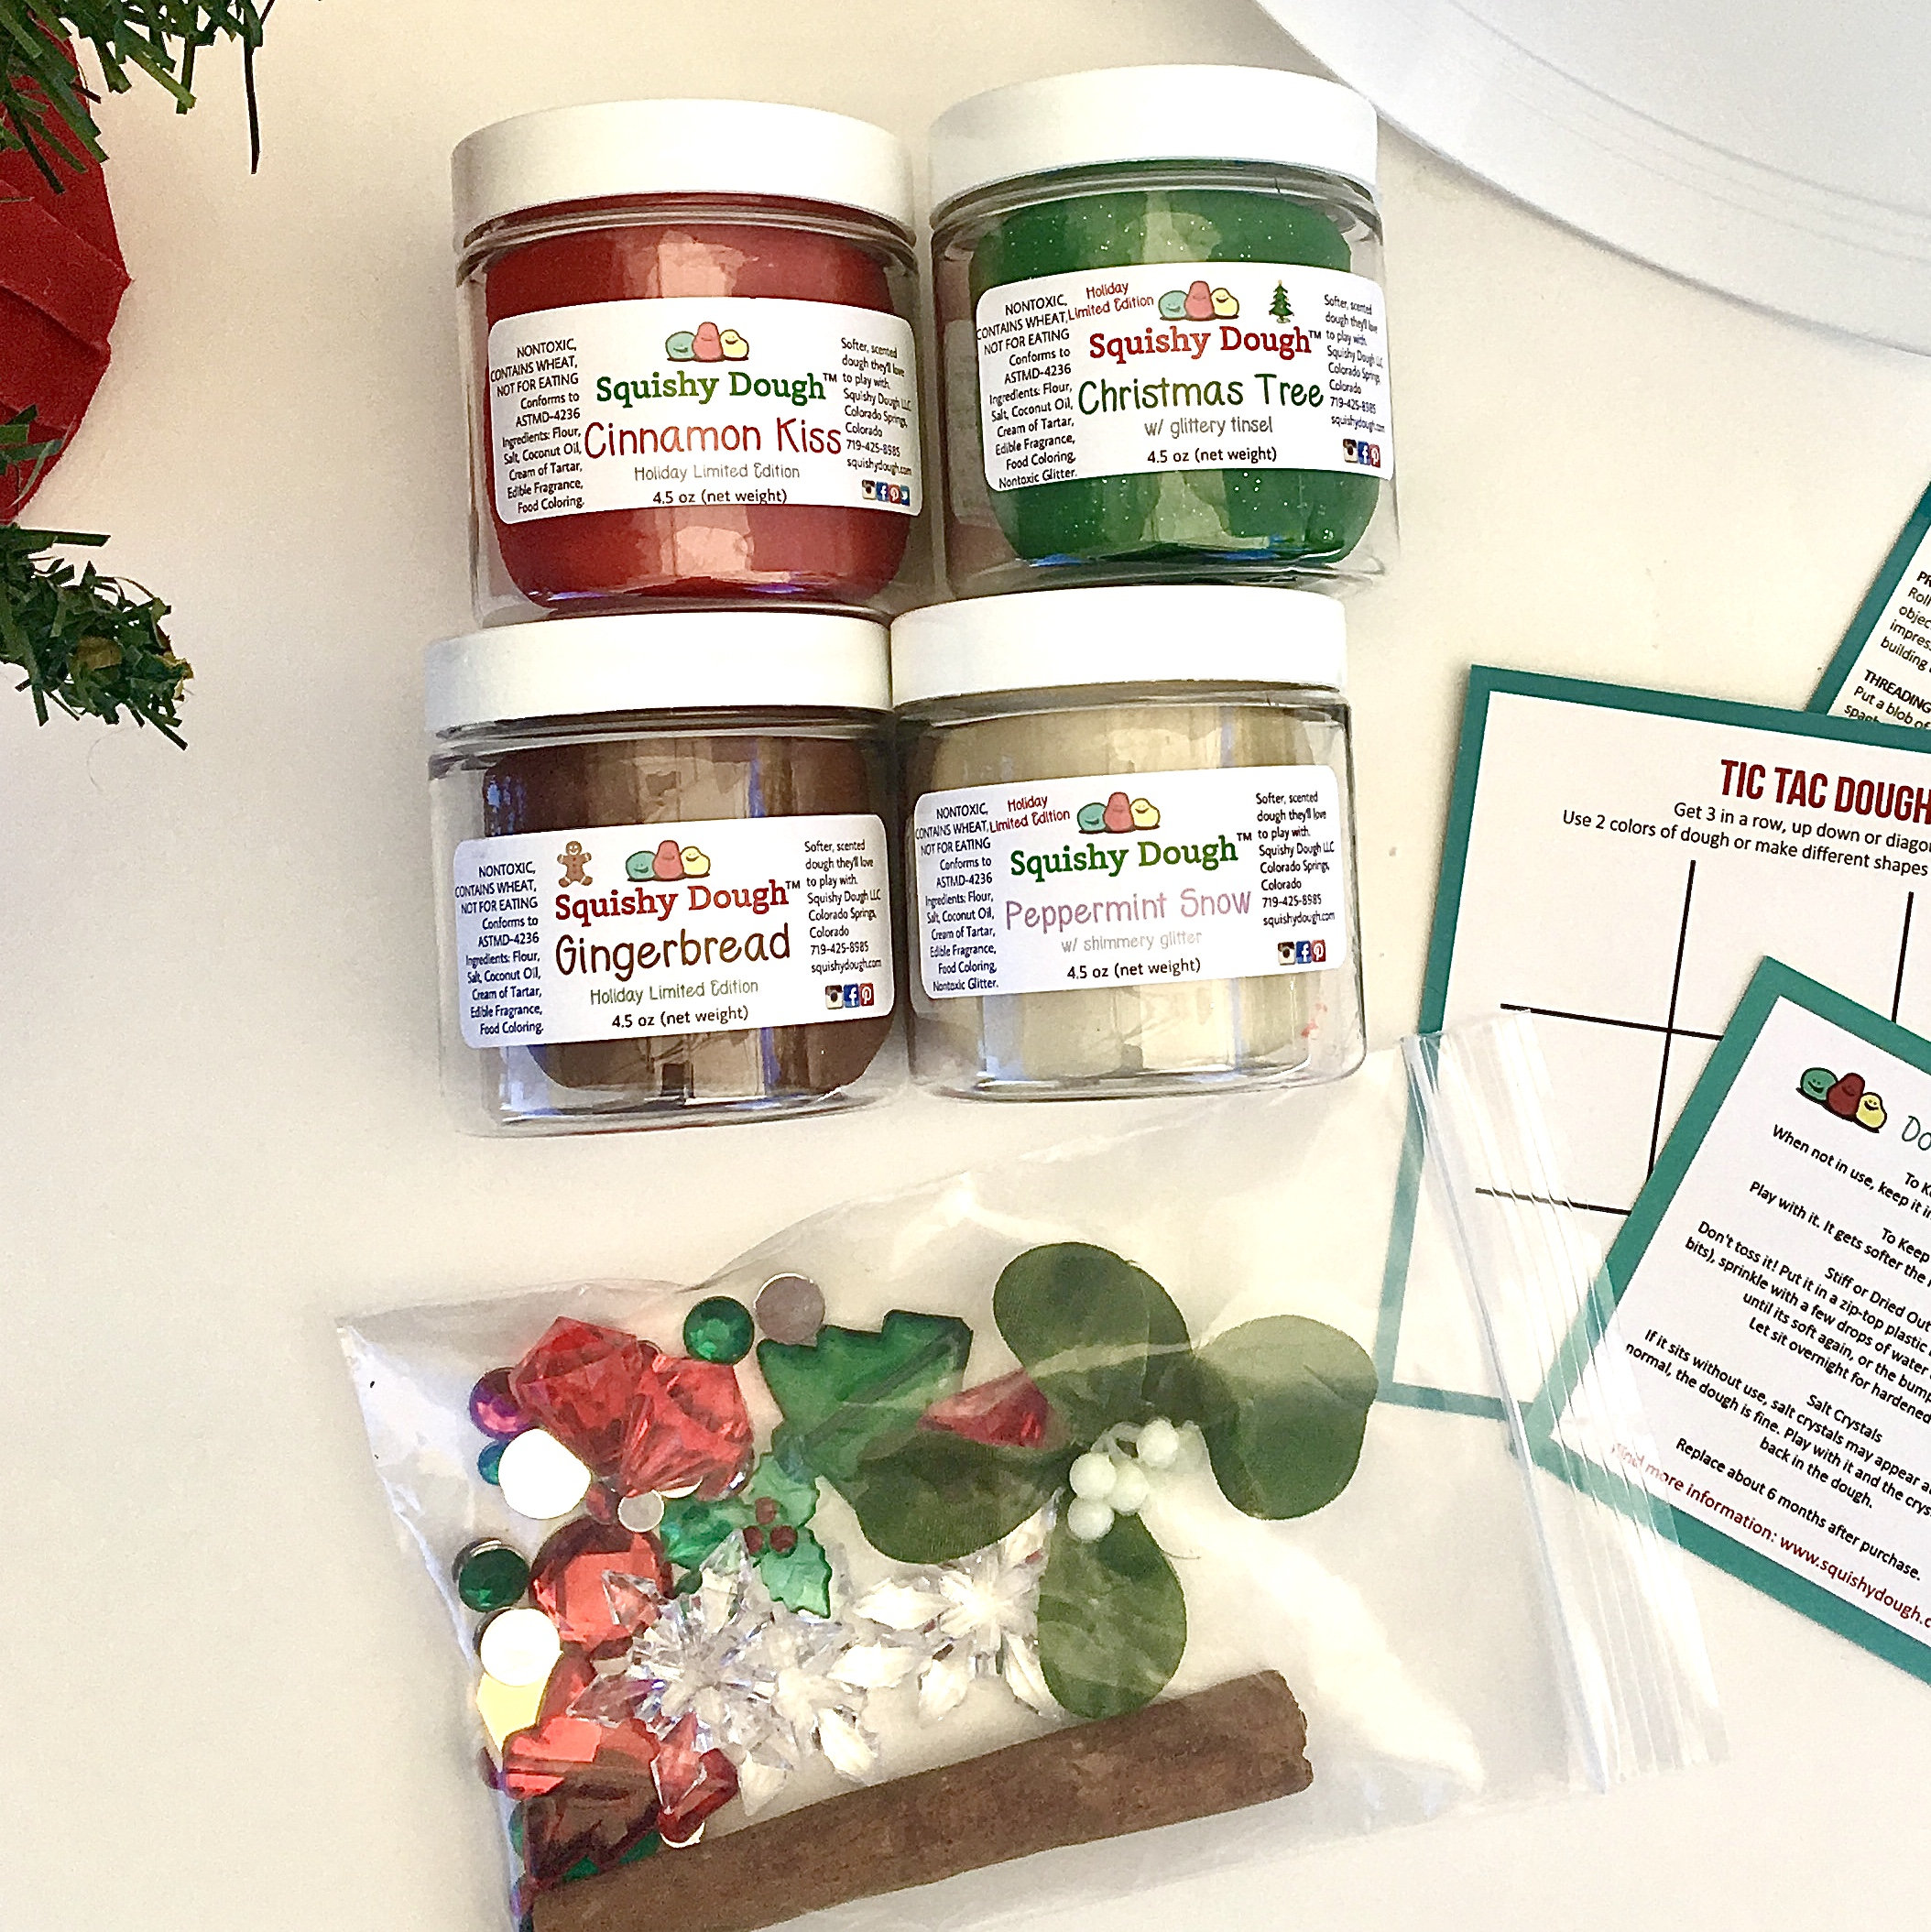 Christmas Play Dough Activity Kit Scented Play Dough Holiday Play Dough Kit Christmas Craft Preschool Toys Squishy Dough